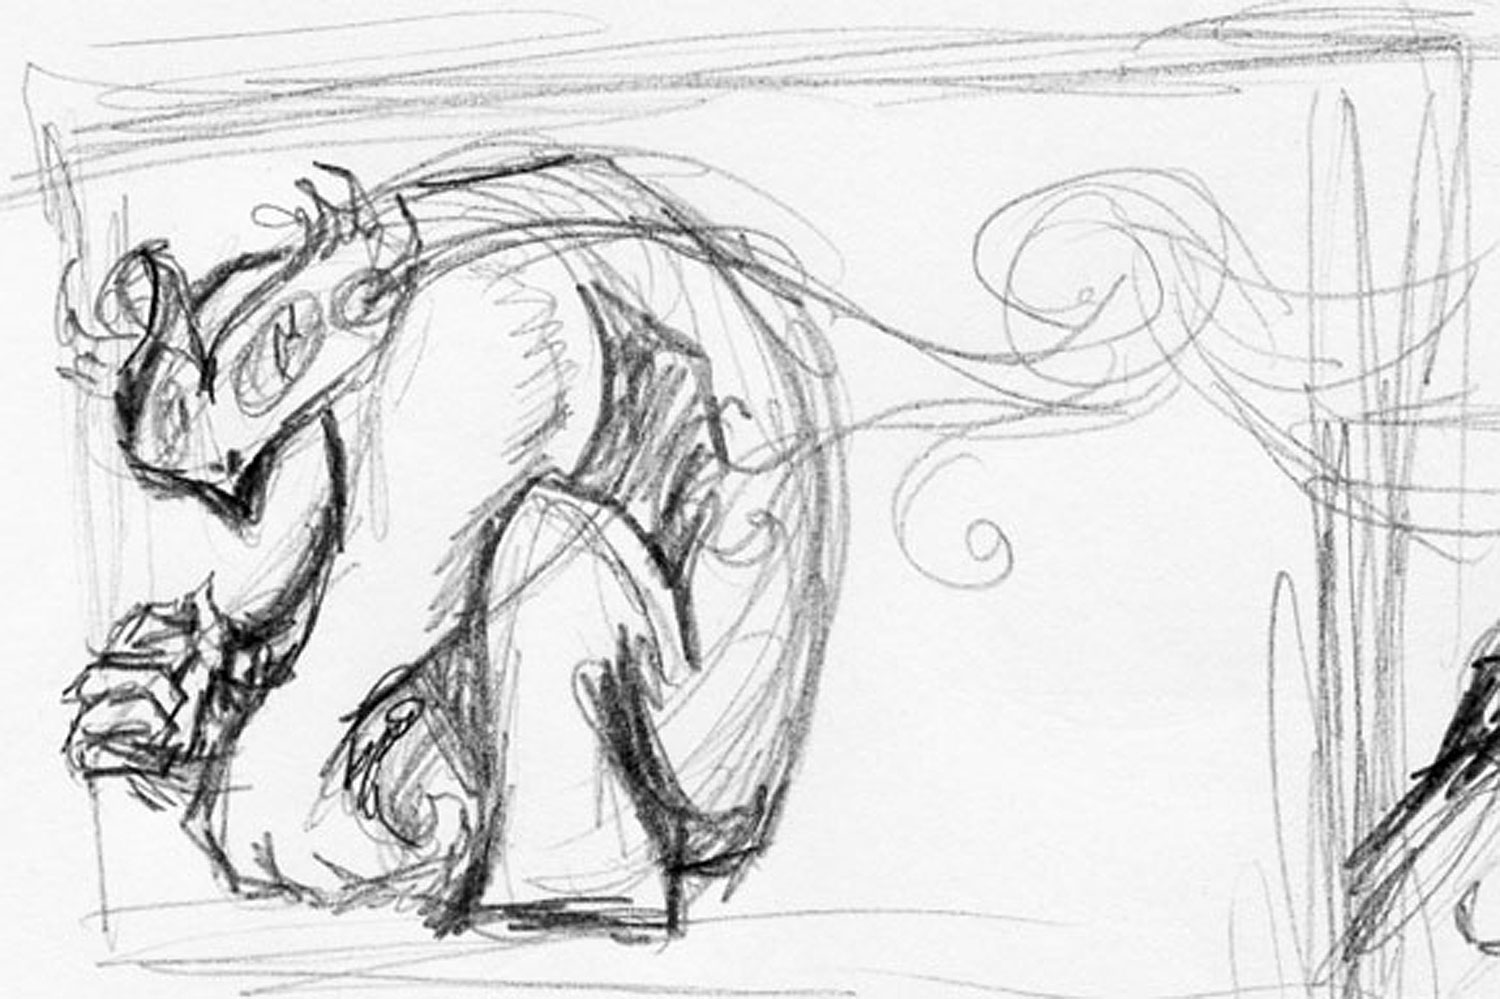 Work-in-Progress: composition sketches